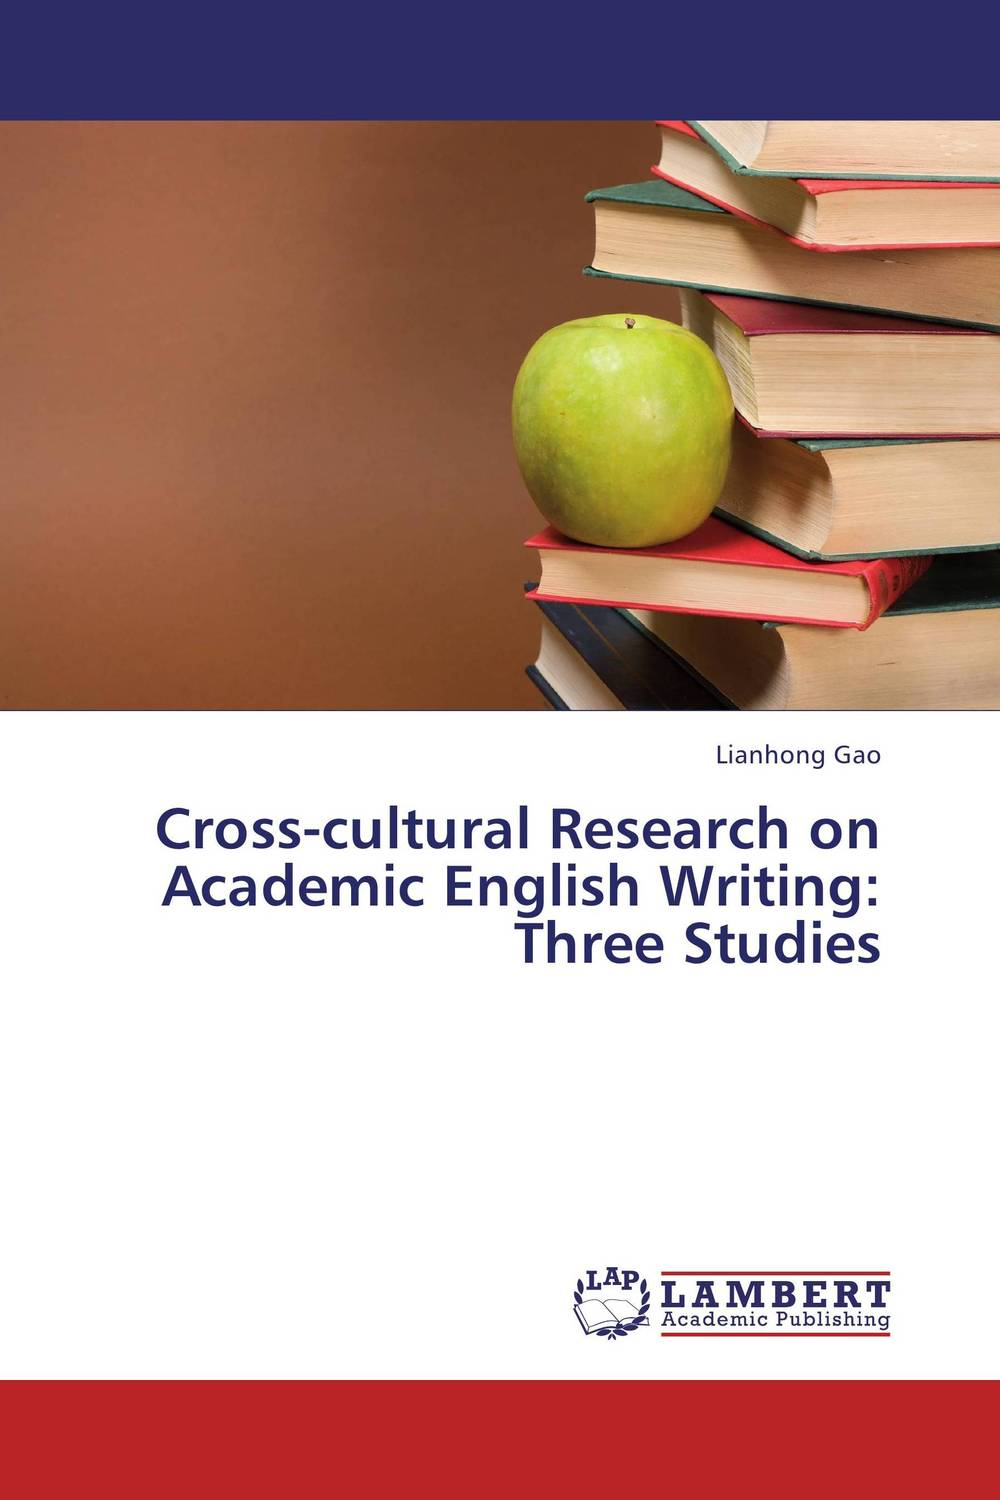 Cross-cultural Research on Academic English Writing: Three Studies